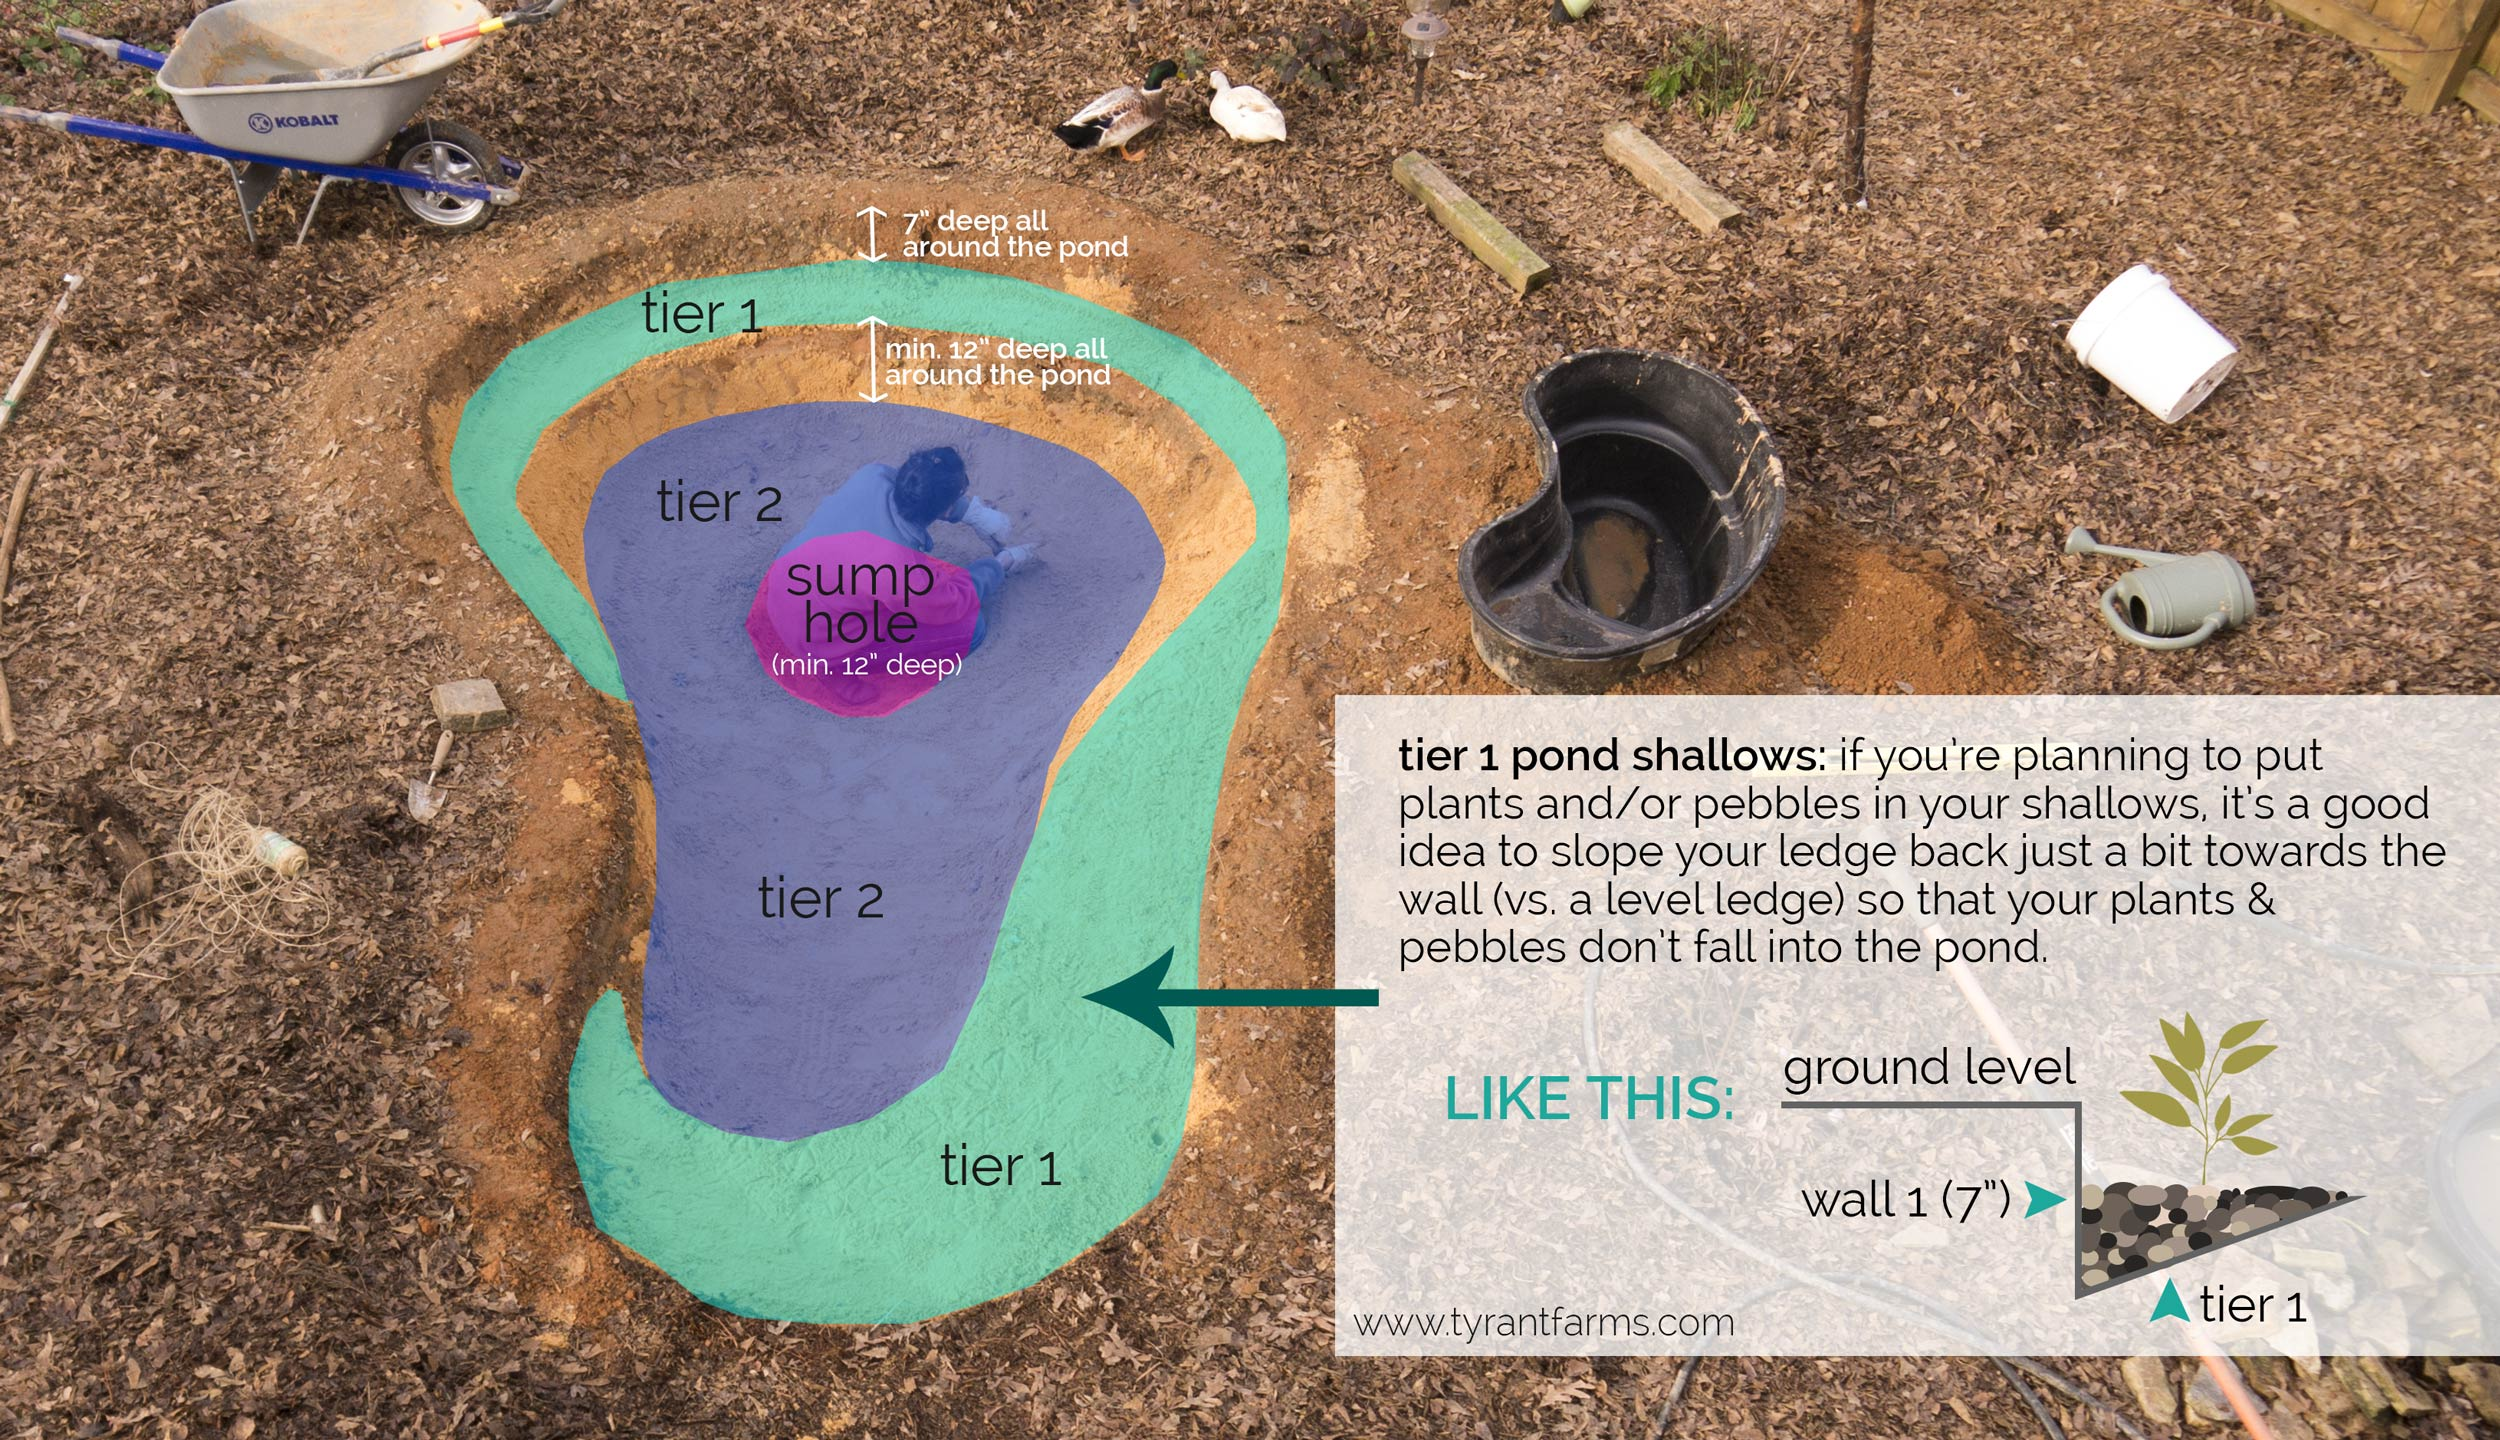 How to build a DIY backyard pond with self-cleaning biofilter